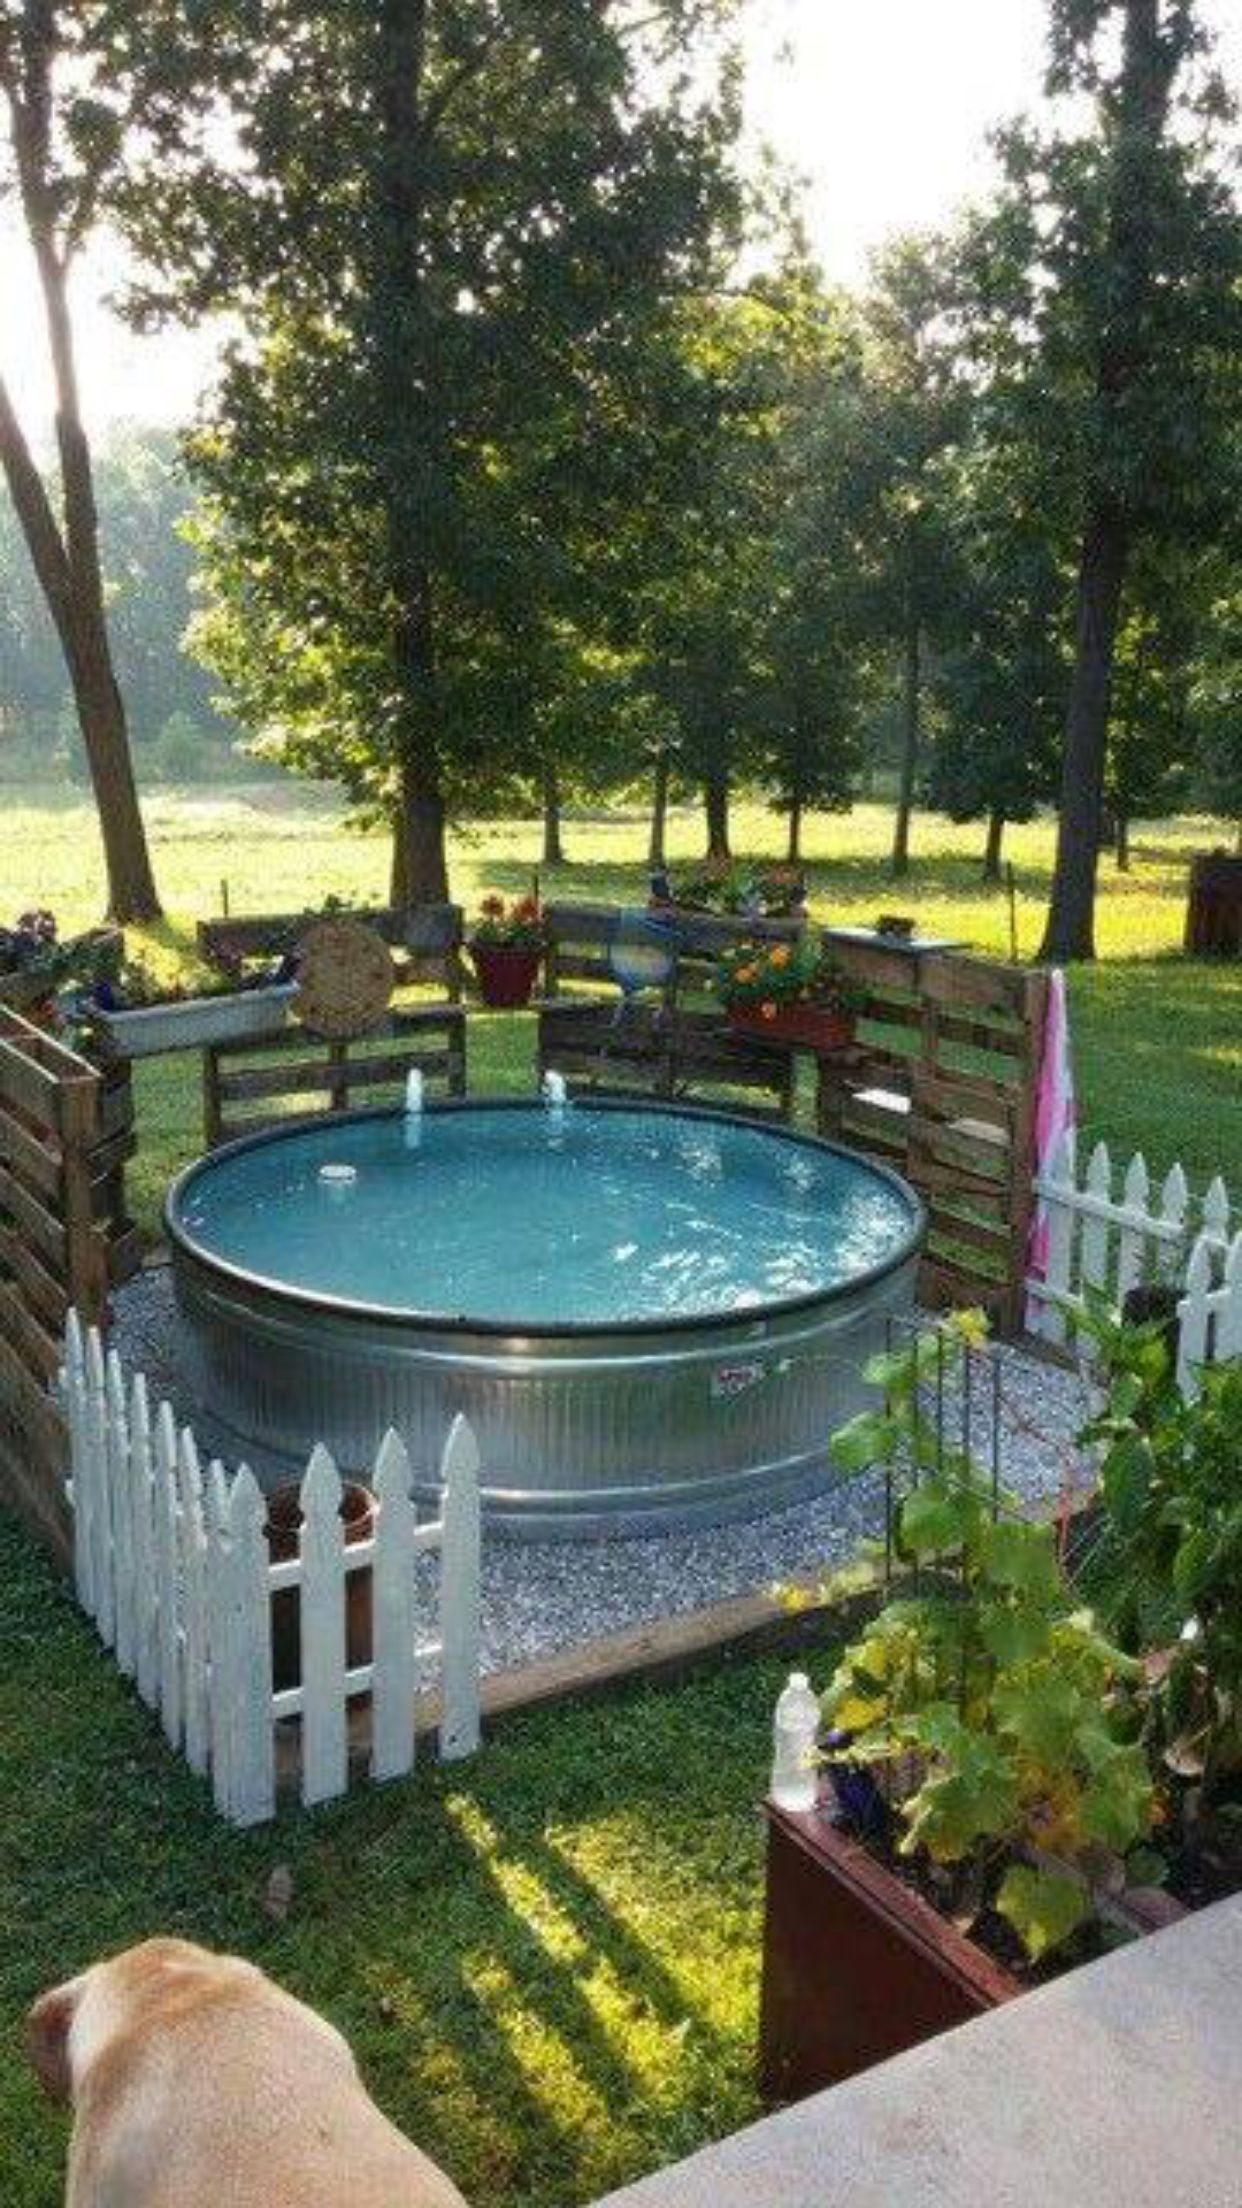 Jacuzzi Pool Utomhus Hot Tub Water Trough Ideas Ideas For The House Stock Tank Pool